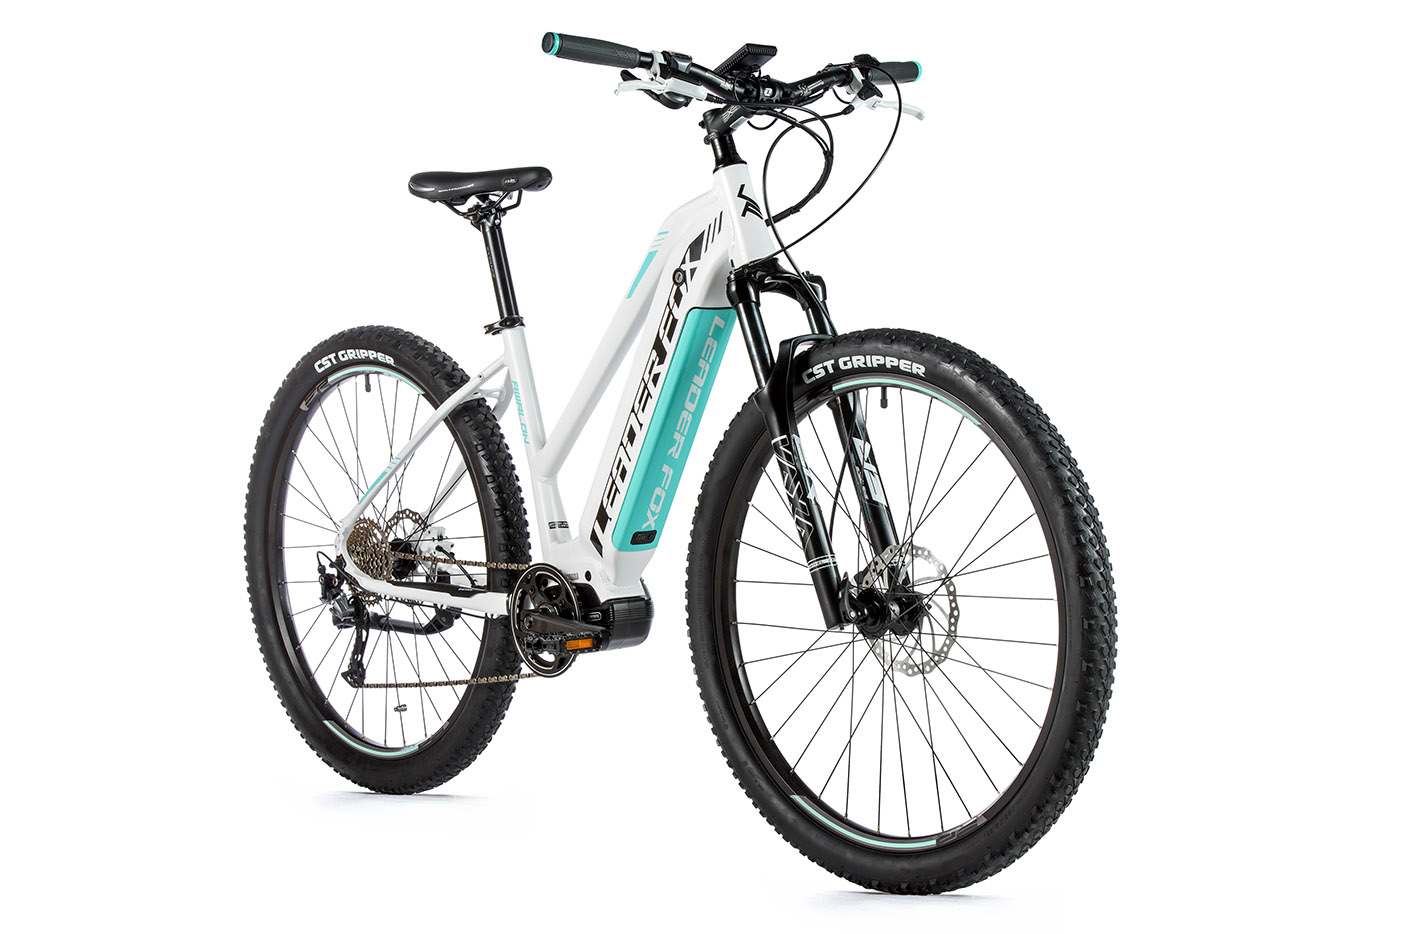 Bicicleta electrica MTB Leader Fox Awalon Lady 29 inch, 2020